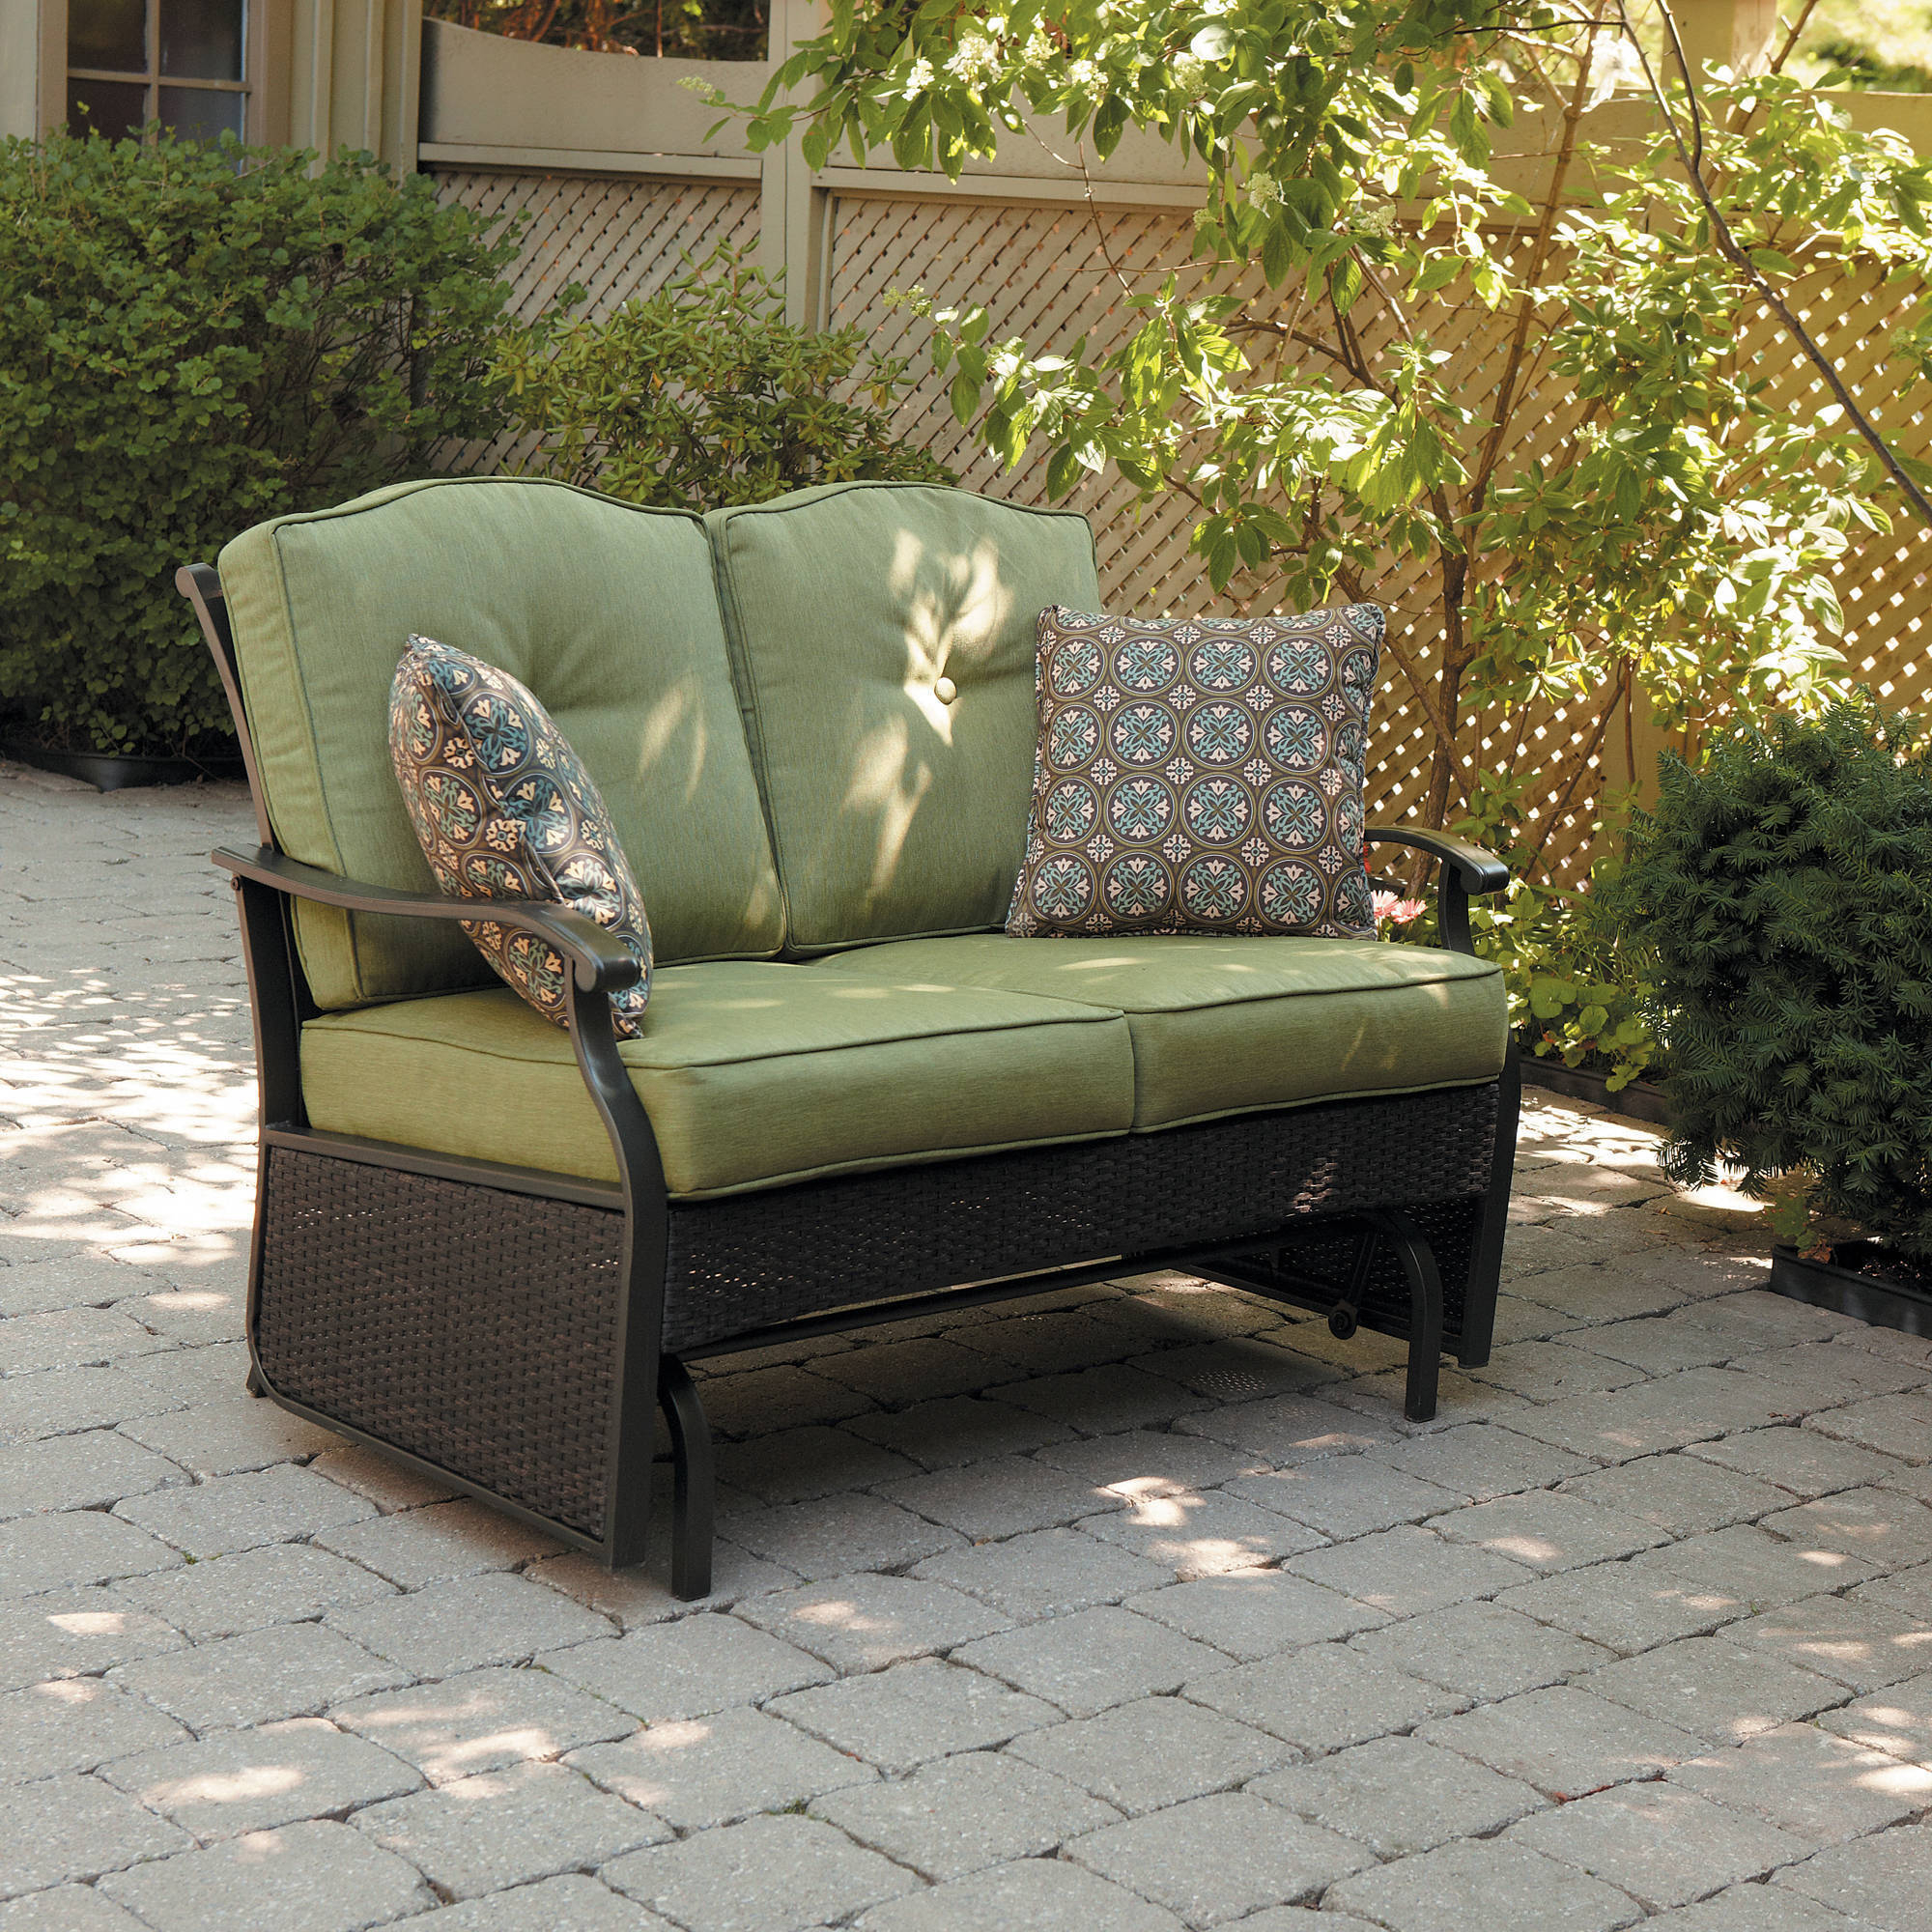 2 Person Natural Cedar Wood Outdoor Gliders Throughout 2020 Better Homes & Gardens Providence 2 Person Outdoor Glider Loveseat – Walmart (Gallery 6 of 25)